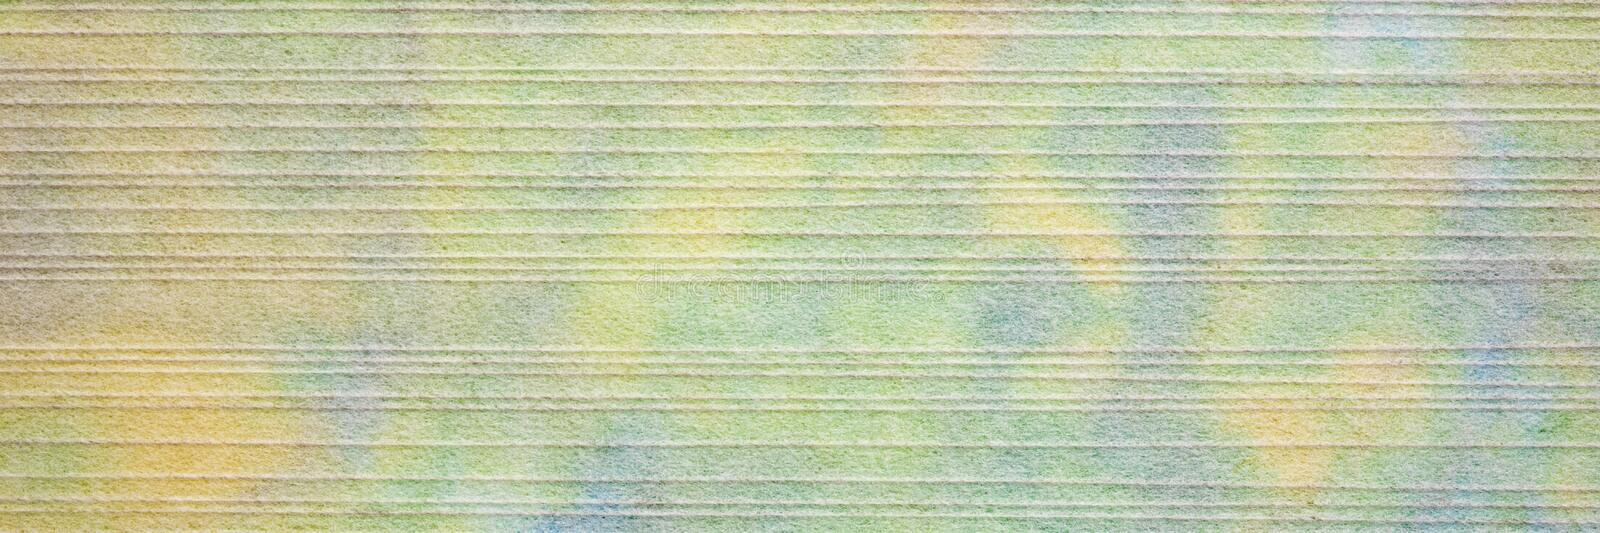 Paper texture with linear pattern. Japanese tissue with white linear pattern against marbled mulberry paper, panoramic banner stock photography